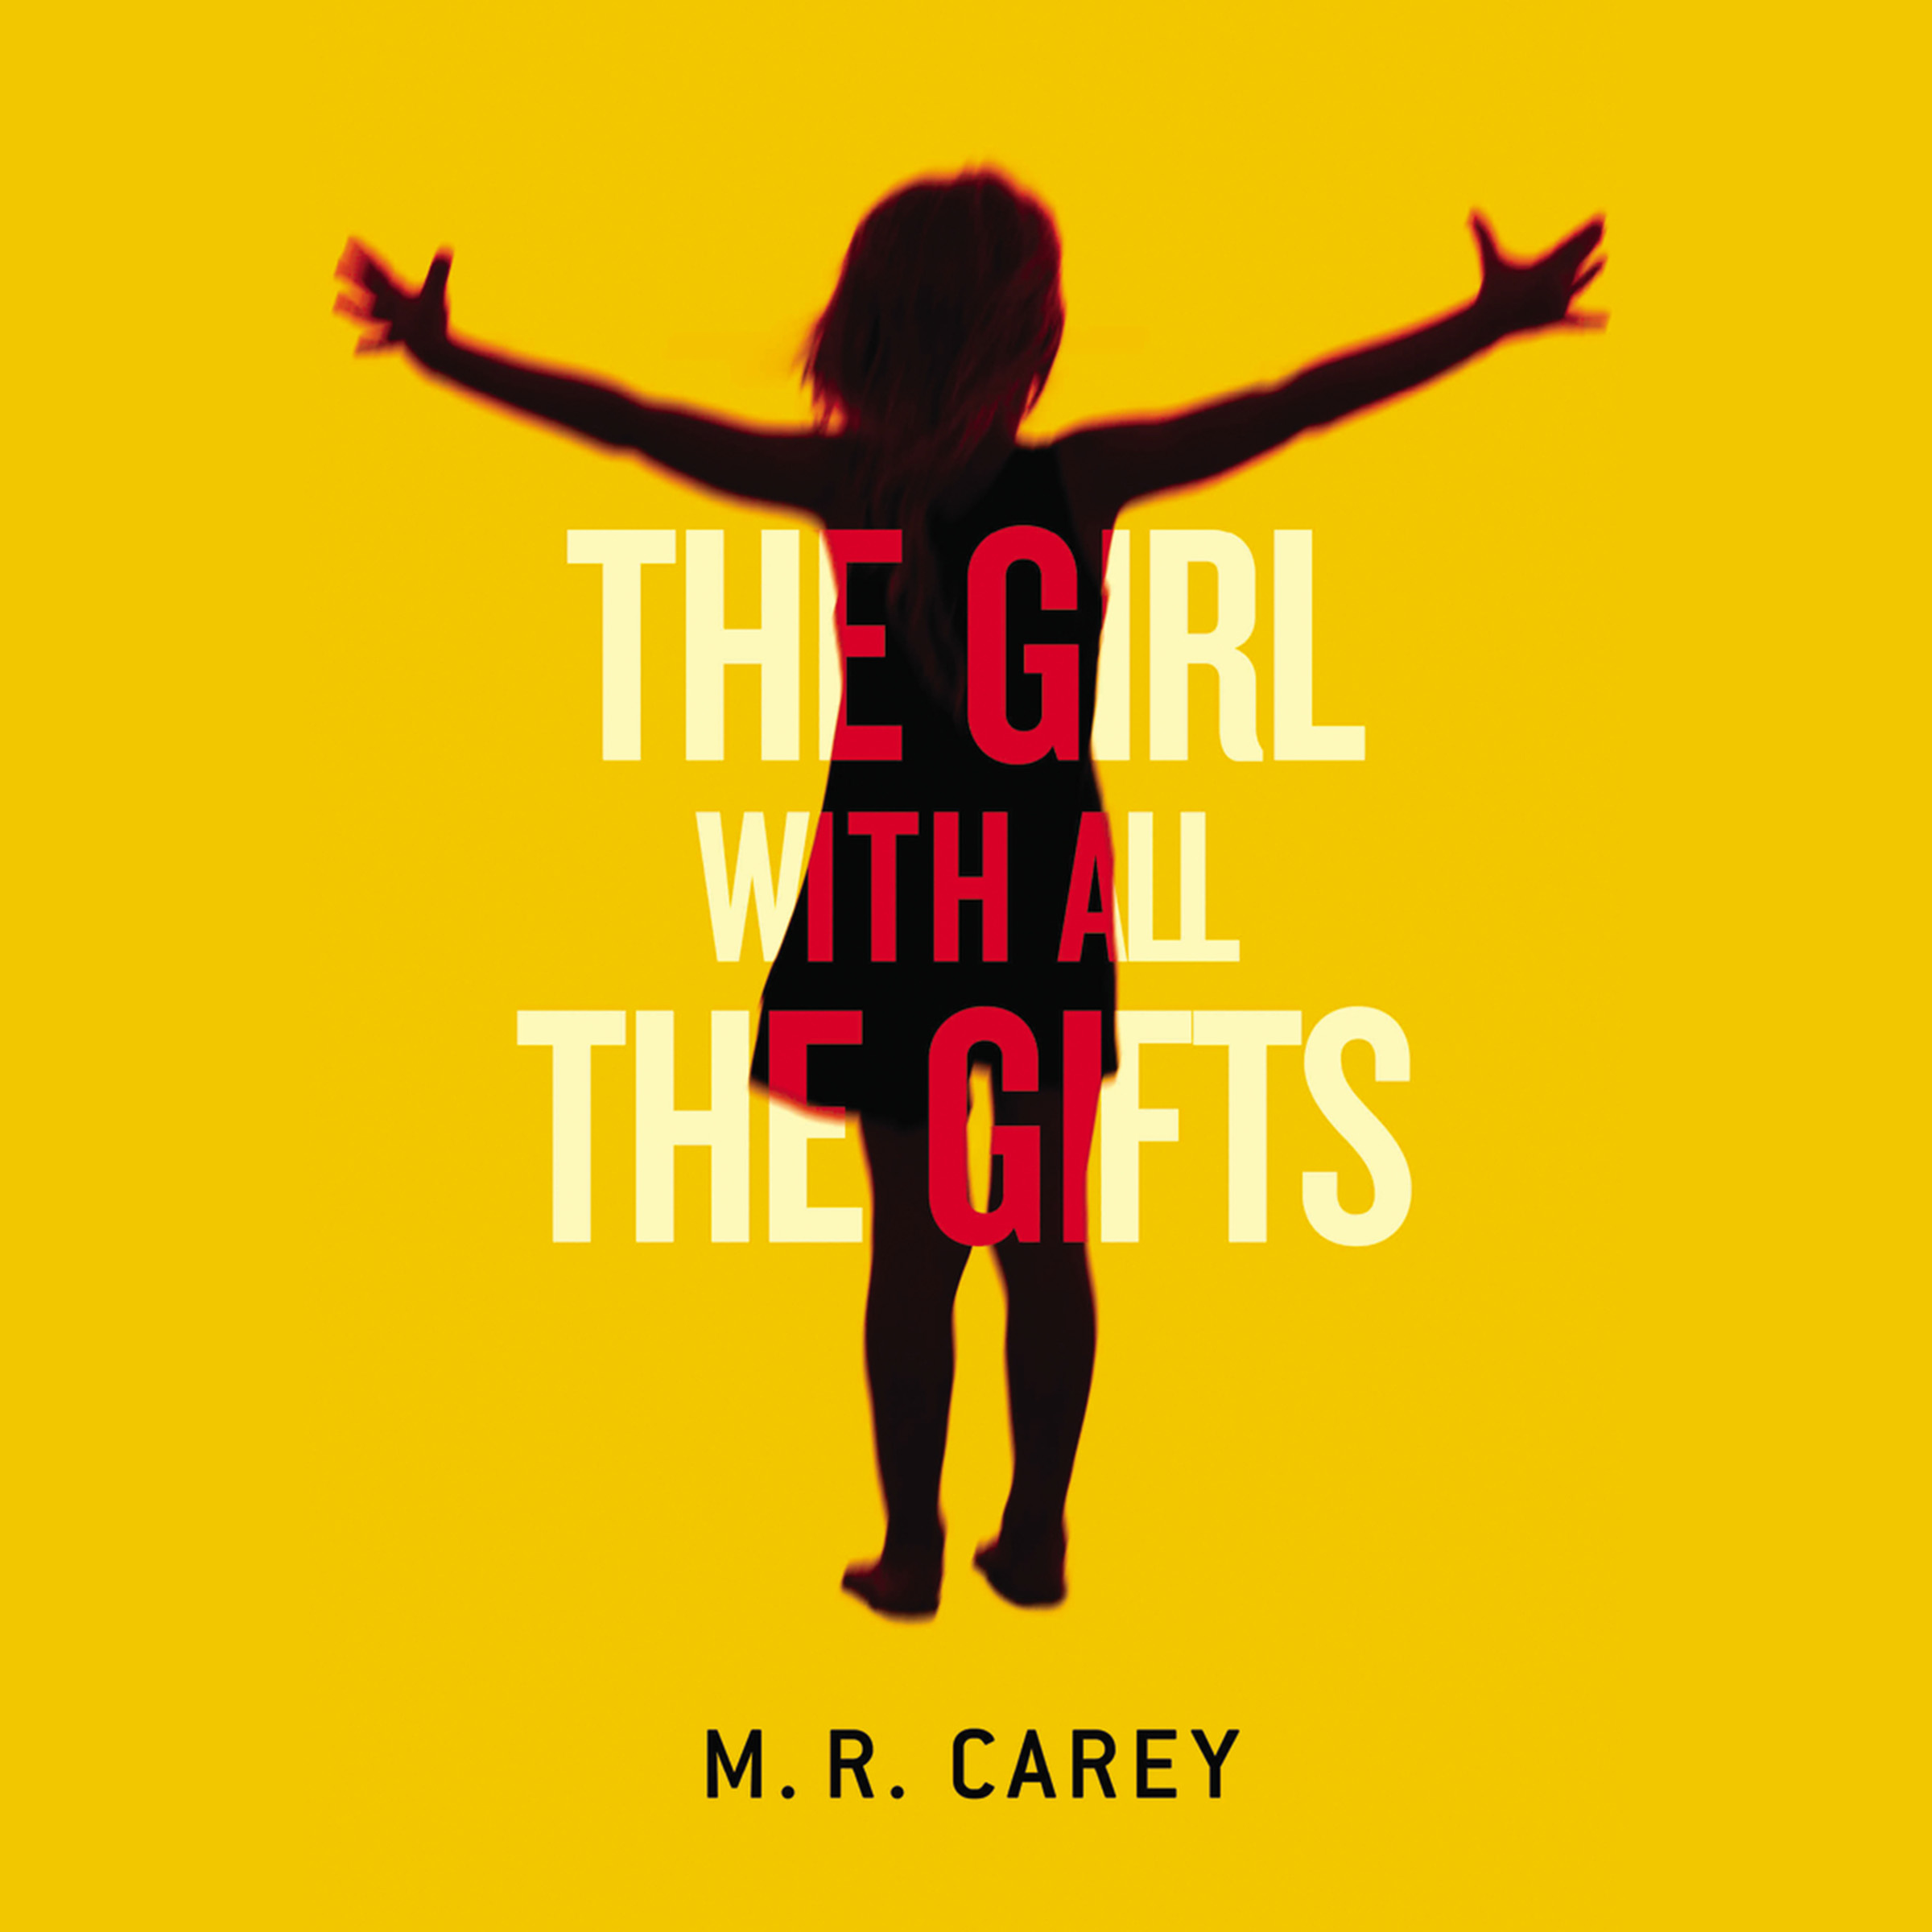 The Girl With All The Gifts.